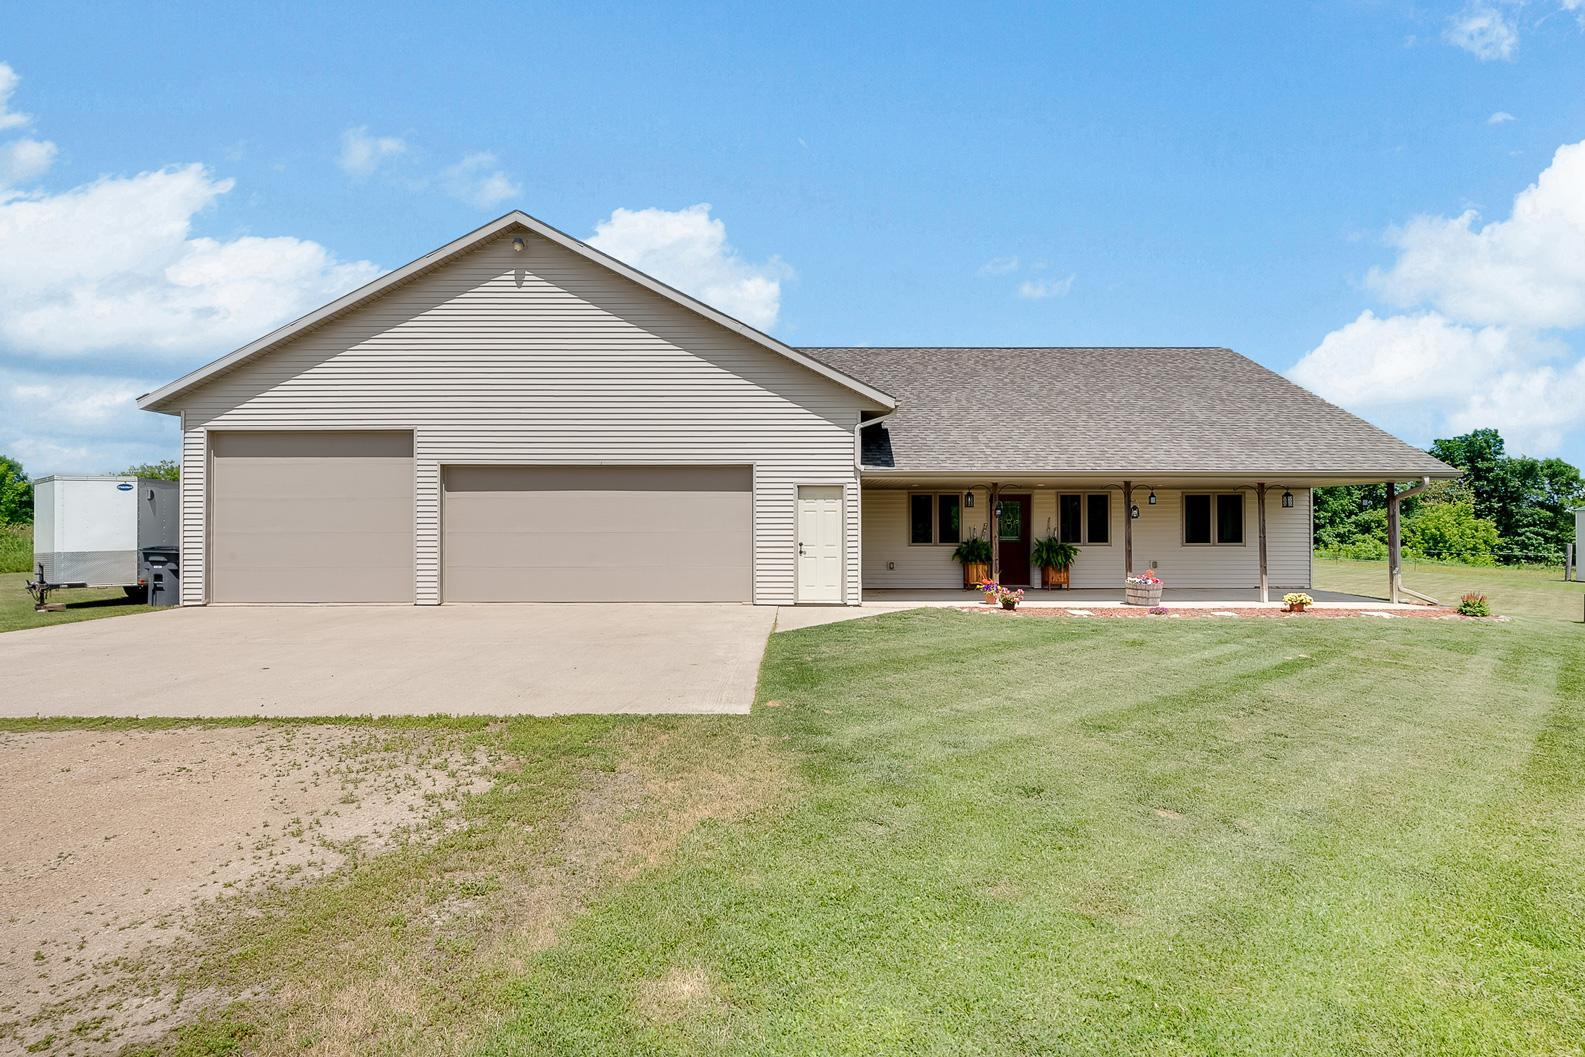 14822 140th Property Photo - Foreston, MN real estate listing